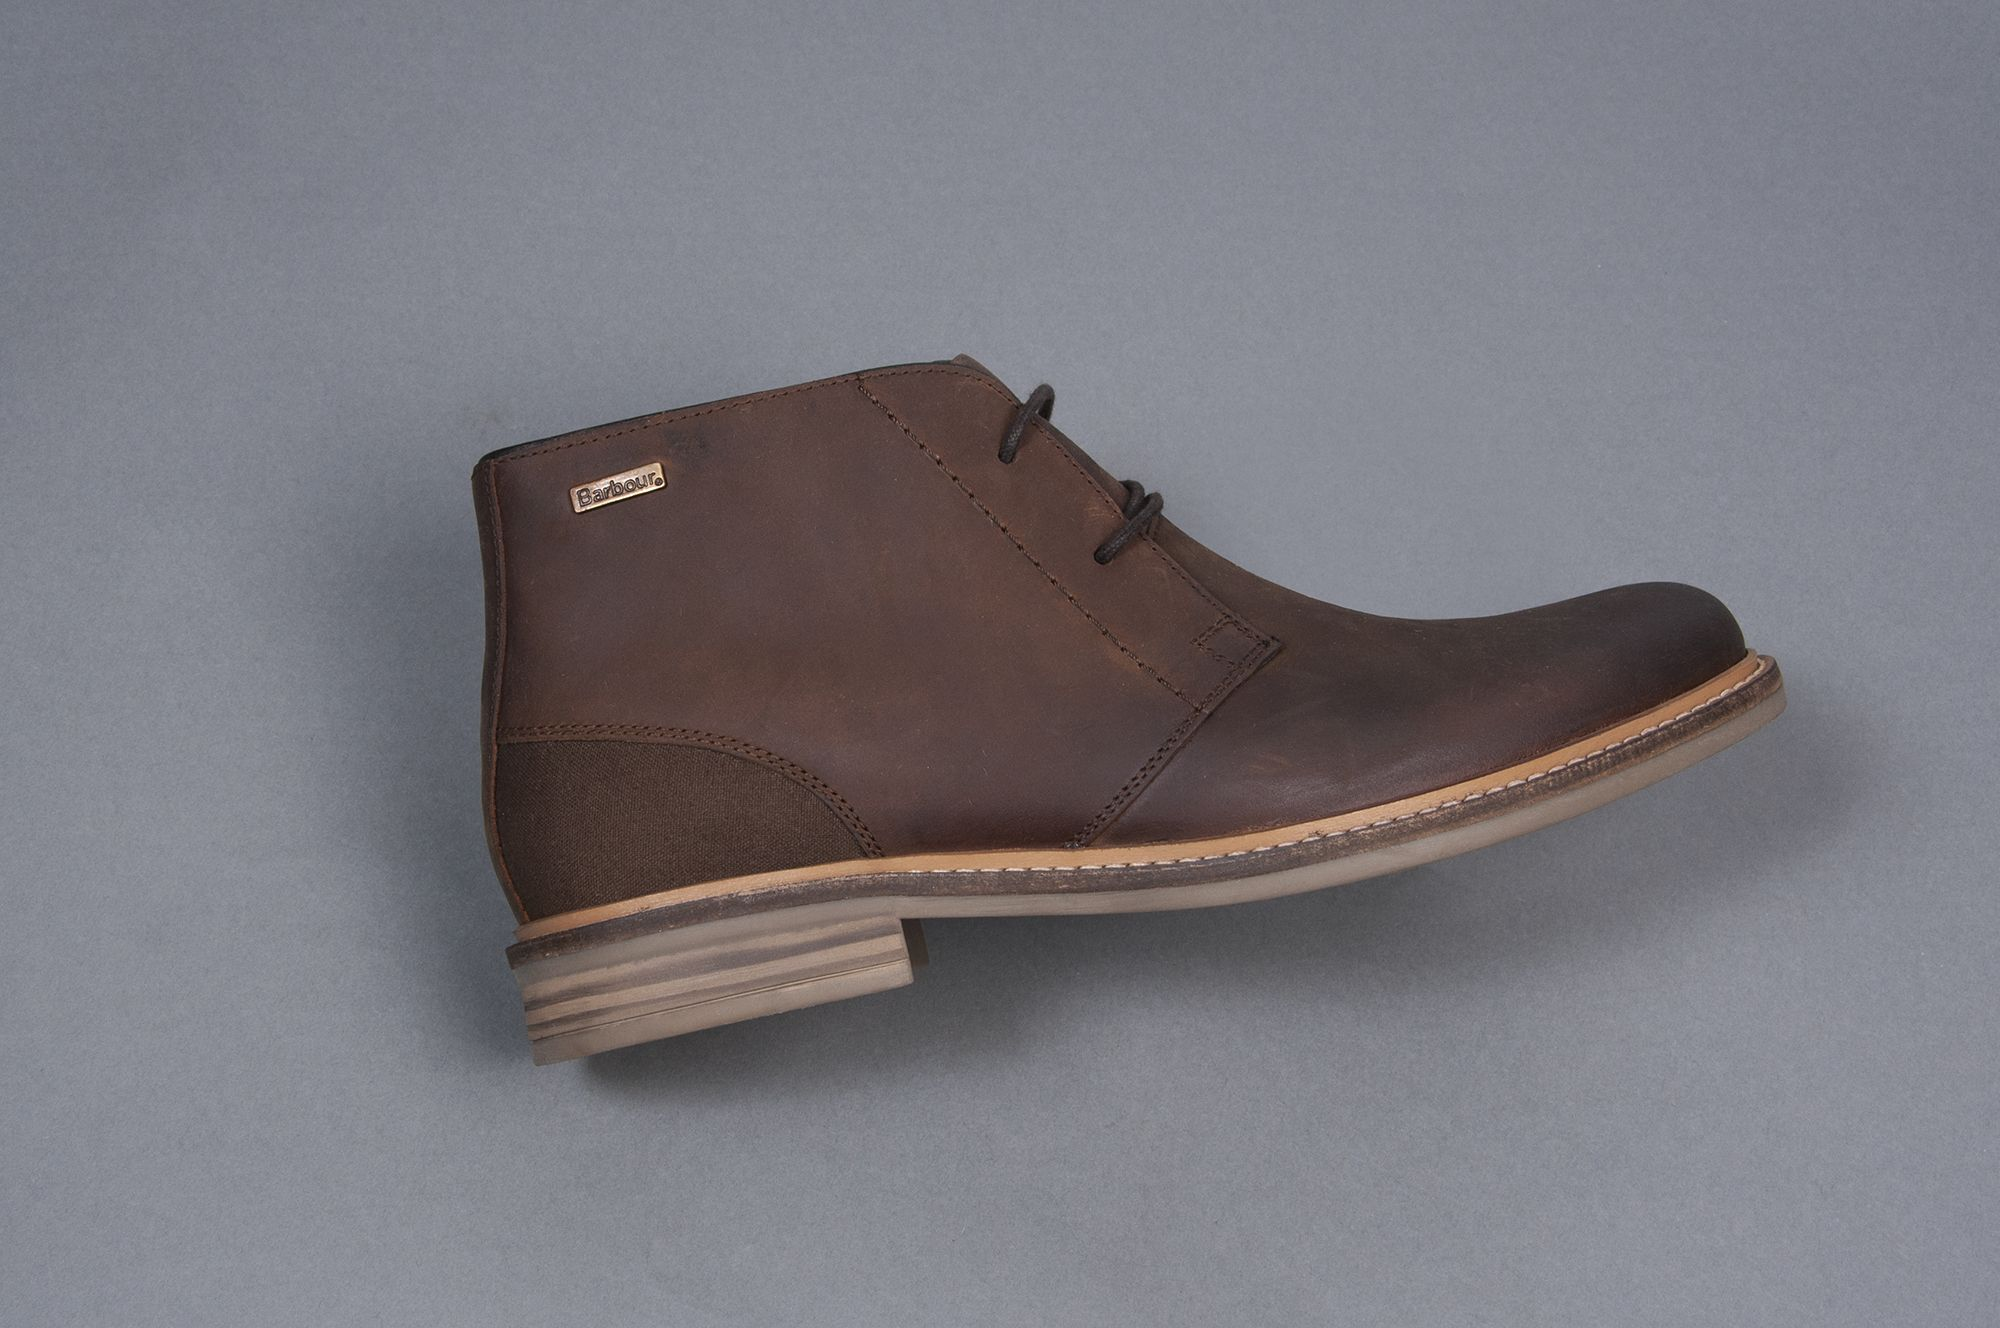 0af69d89c79 Barbour Readhead Mens Leather Chukka Boots | Men's Shoe Style | Mens ...